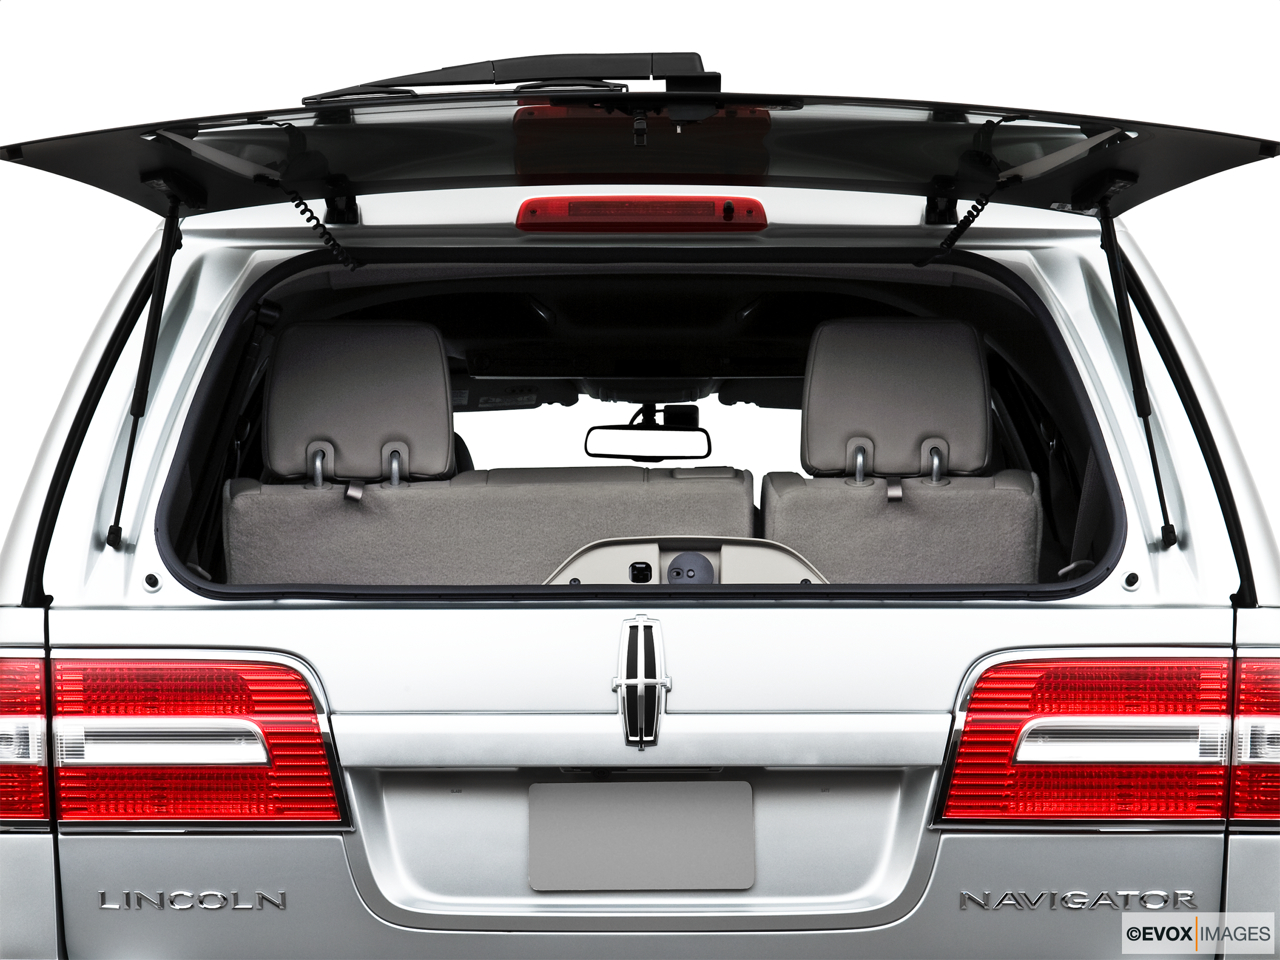 2010 Lincoln Navigator Base Rear hatch window open